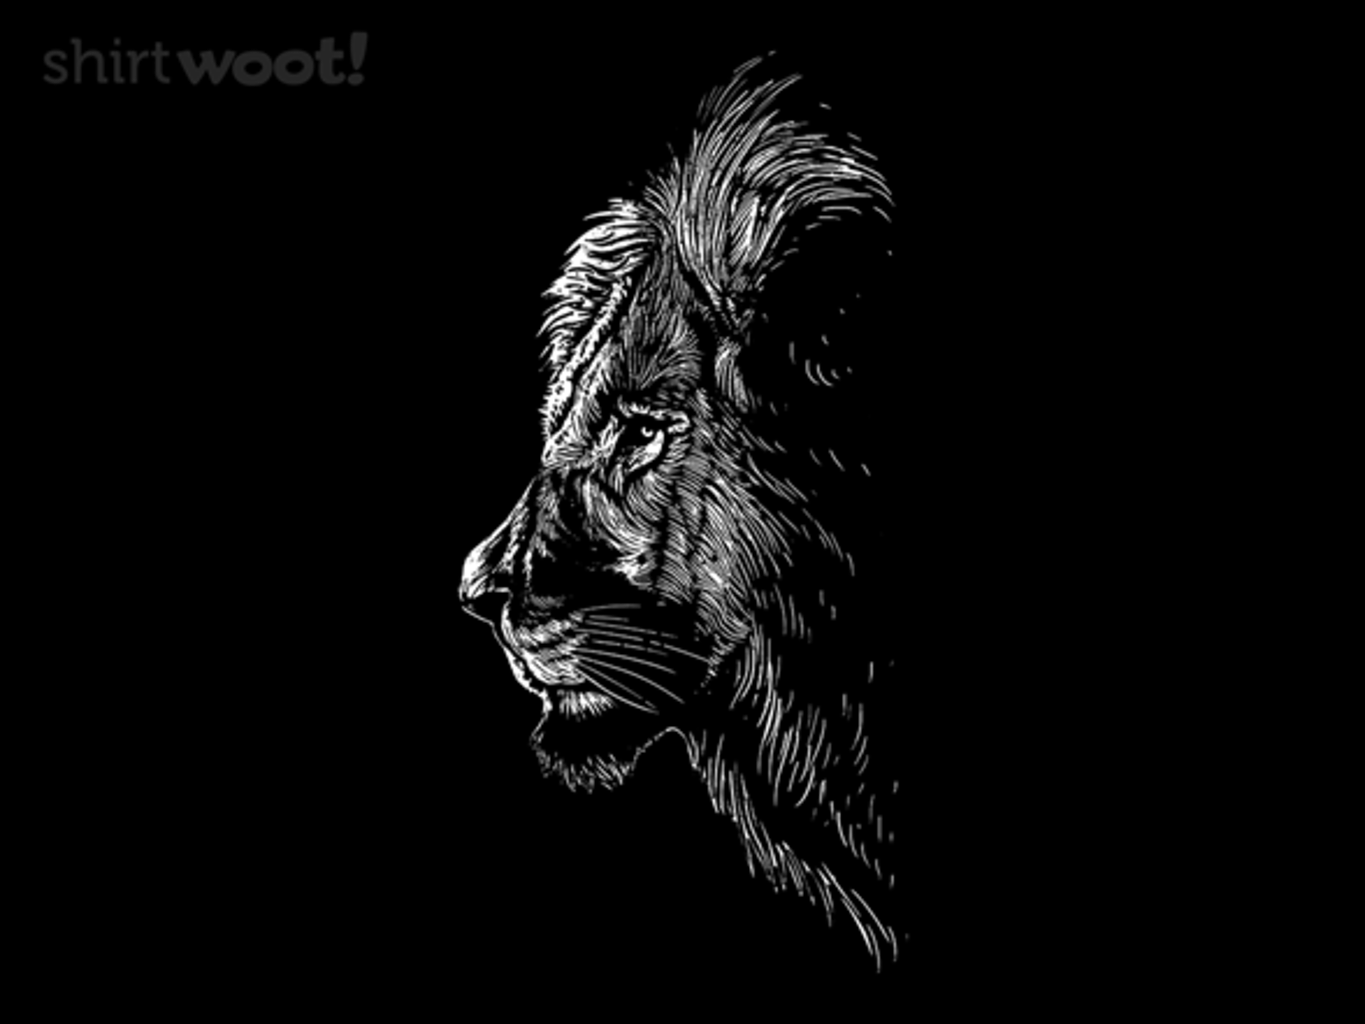 Woot!: King of Lions